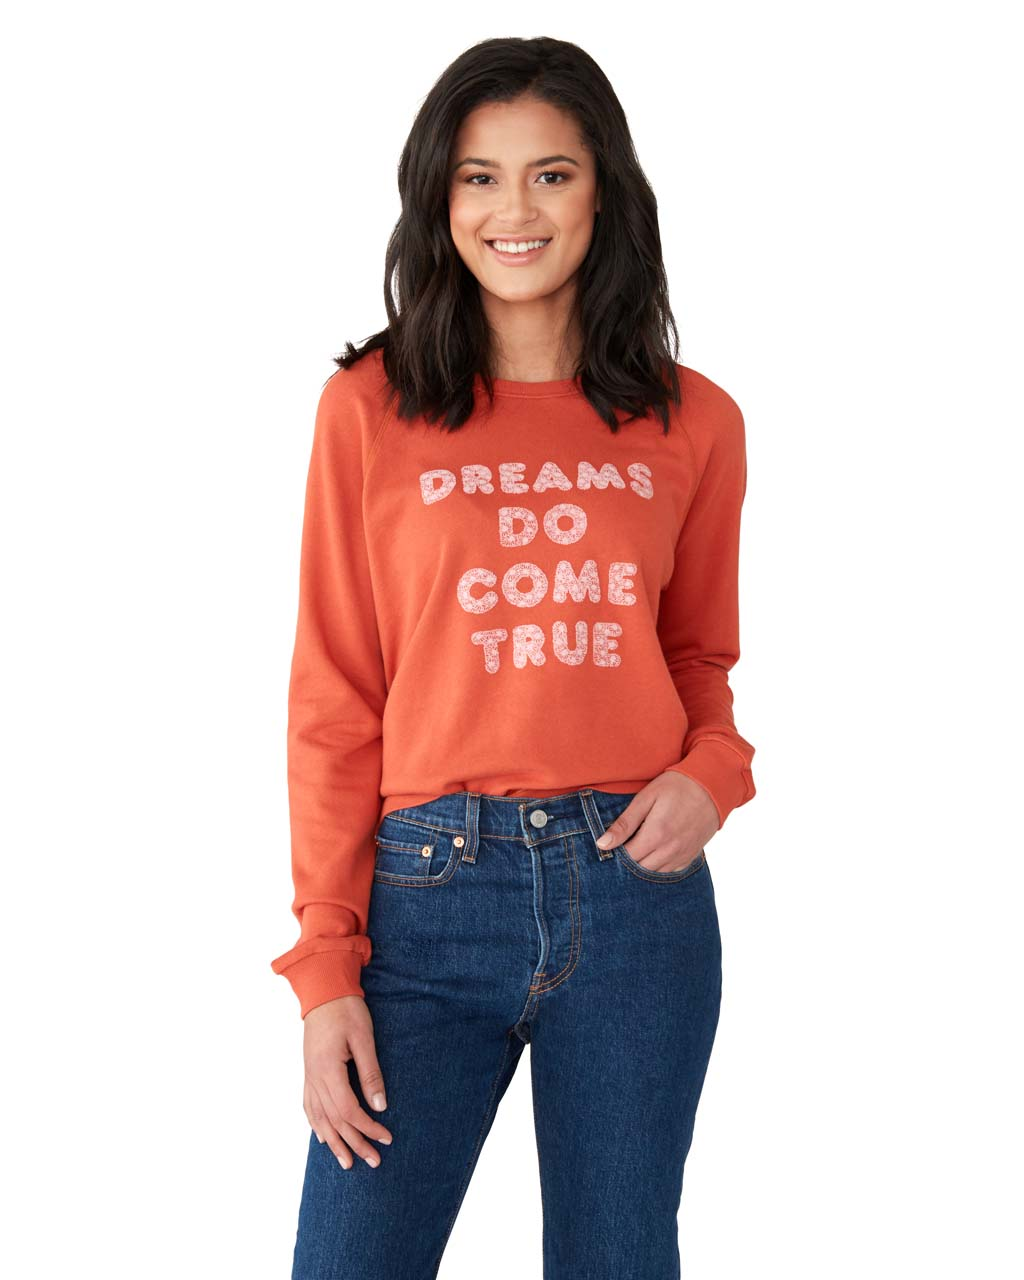 This sweatshirt comes in red, with 'Dreams Do Come True' flock-printed in pink on the front.